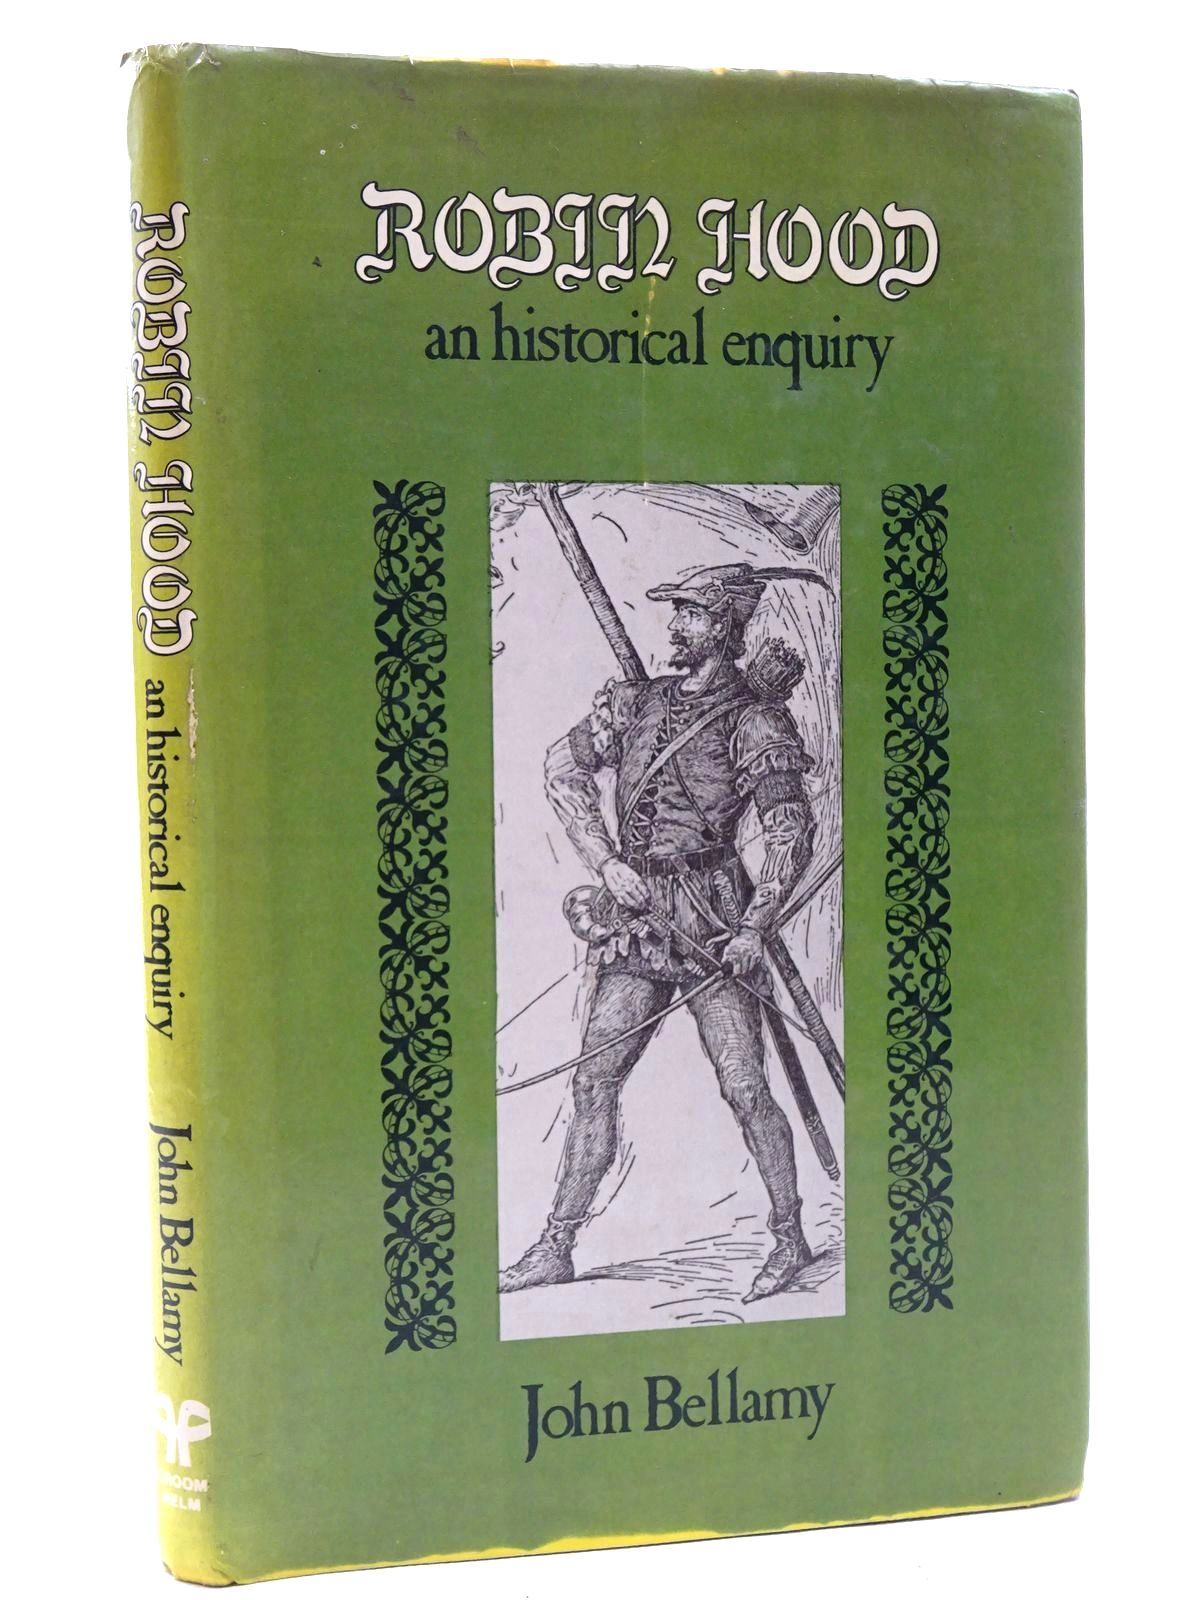 Photo of ROBIN HOOD AN HISTORICAL ENQUIRY written by Bellamy, John published by Croom Helm Ltd. (STOCK CODE: 1317330)  for sale by Stella & Rose's Books